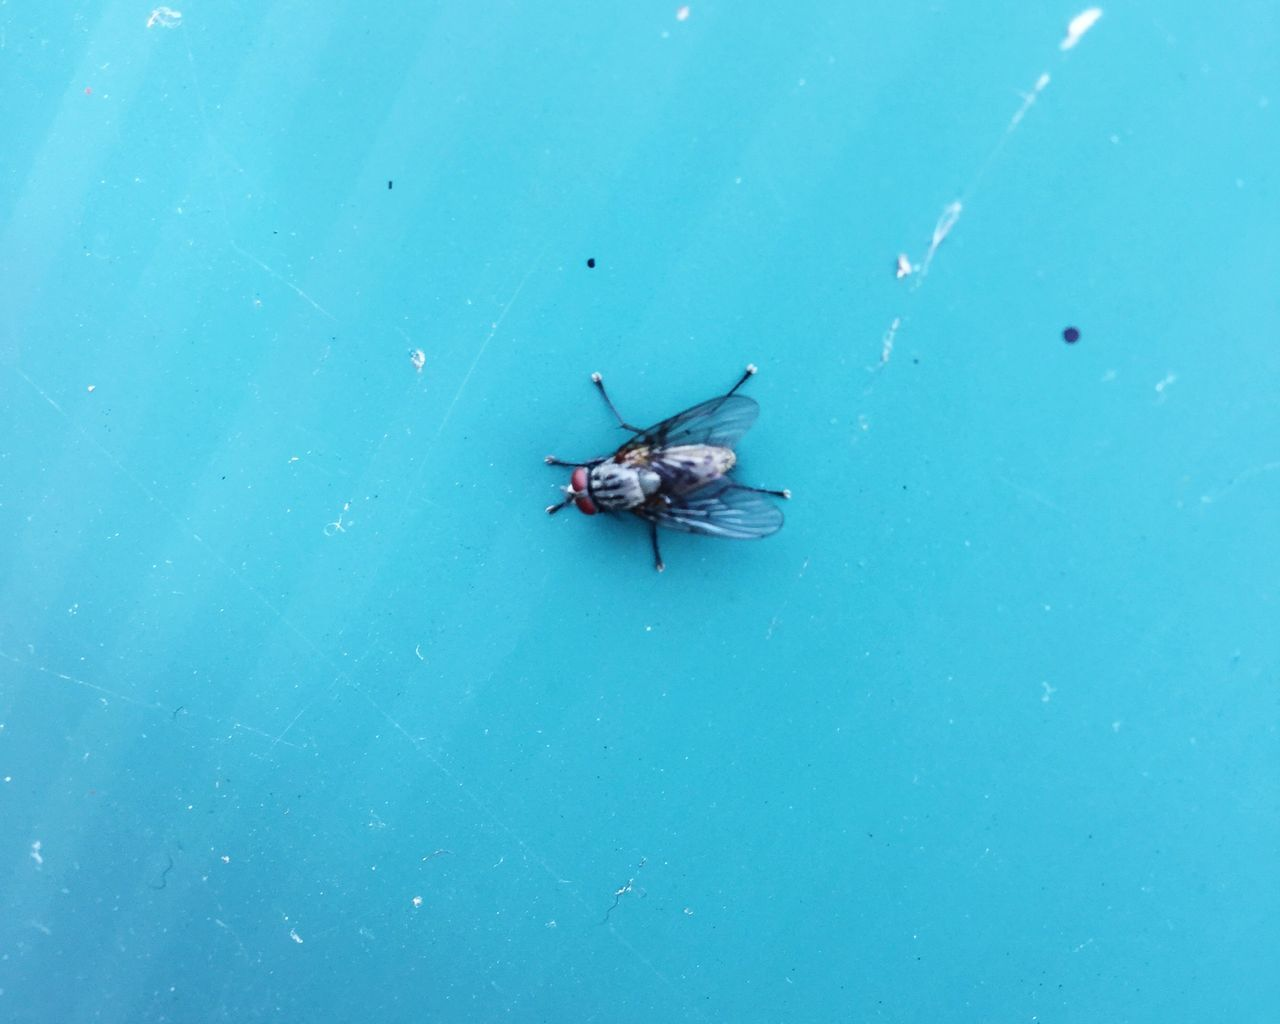 insect, one animal, animal themes, animals in the wild, high angle view, blue, no people, day, animal wildlife, outdoors, nature, close-up